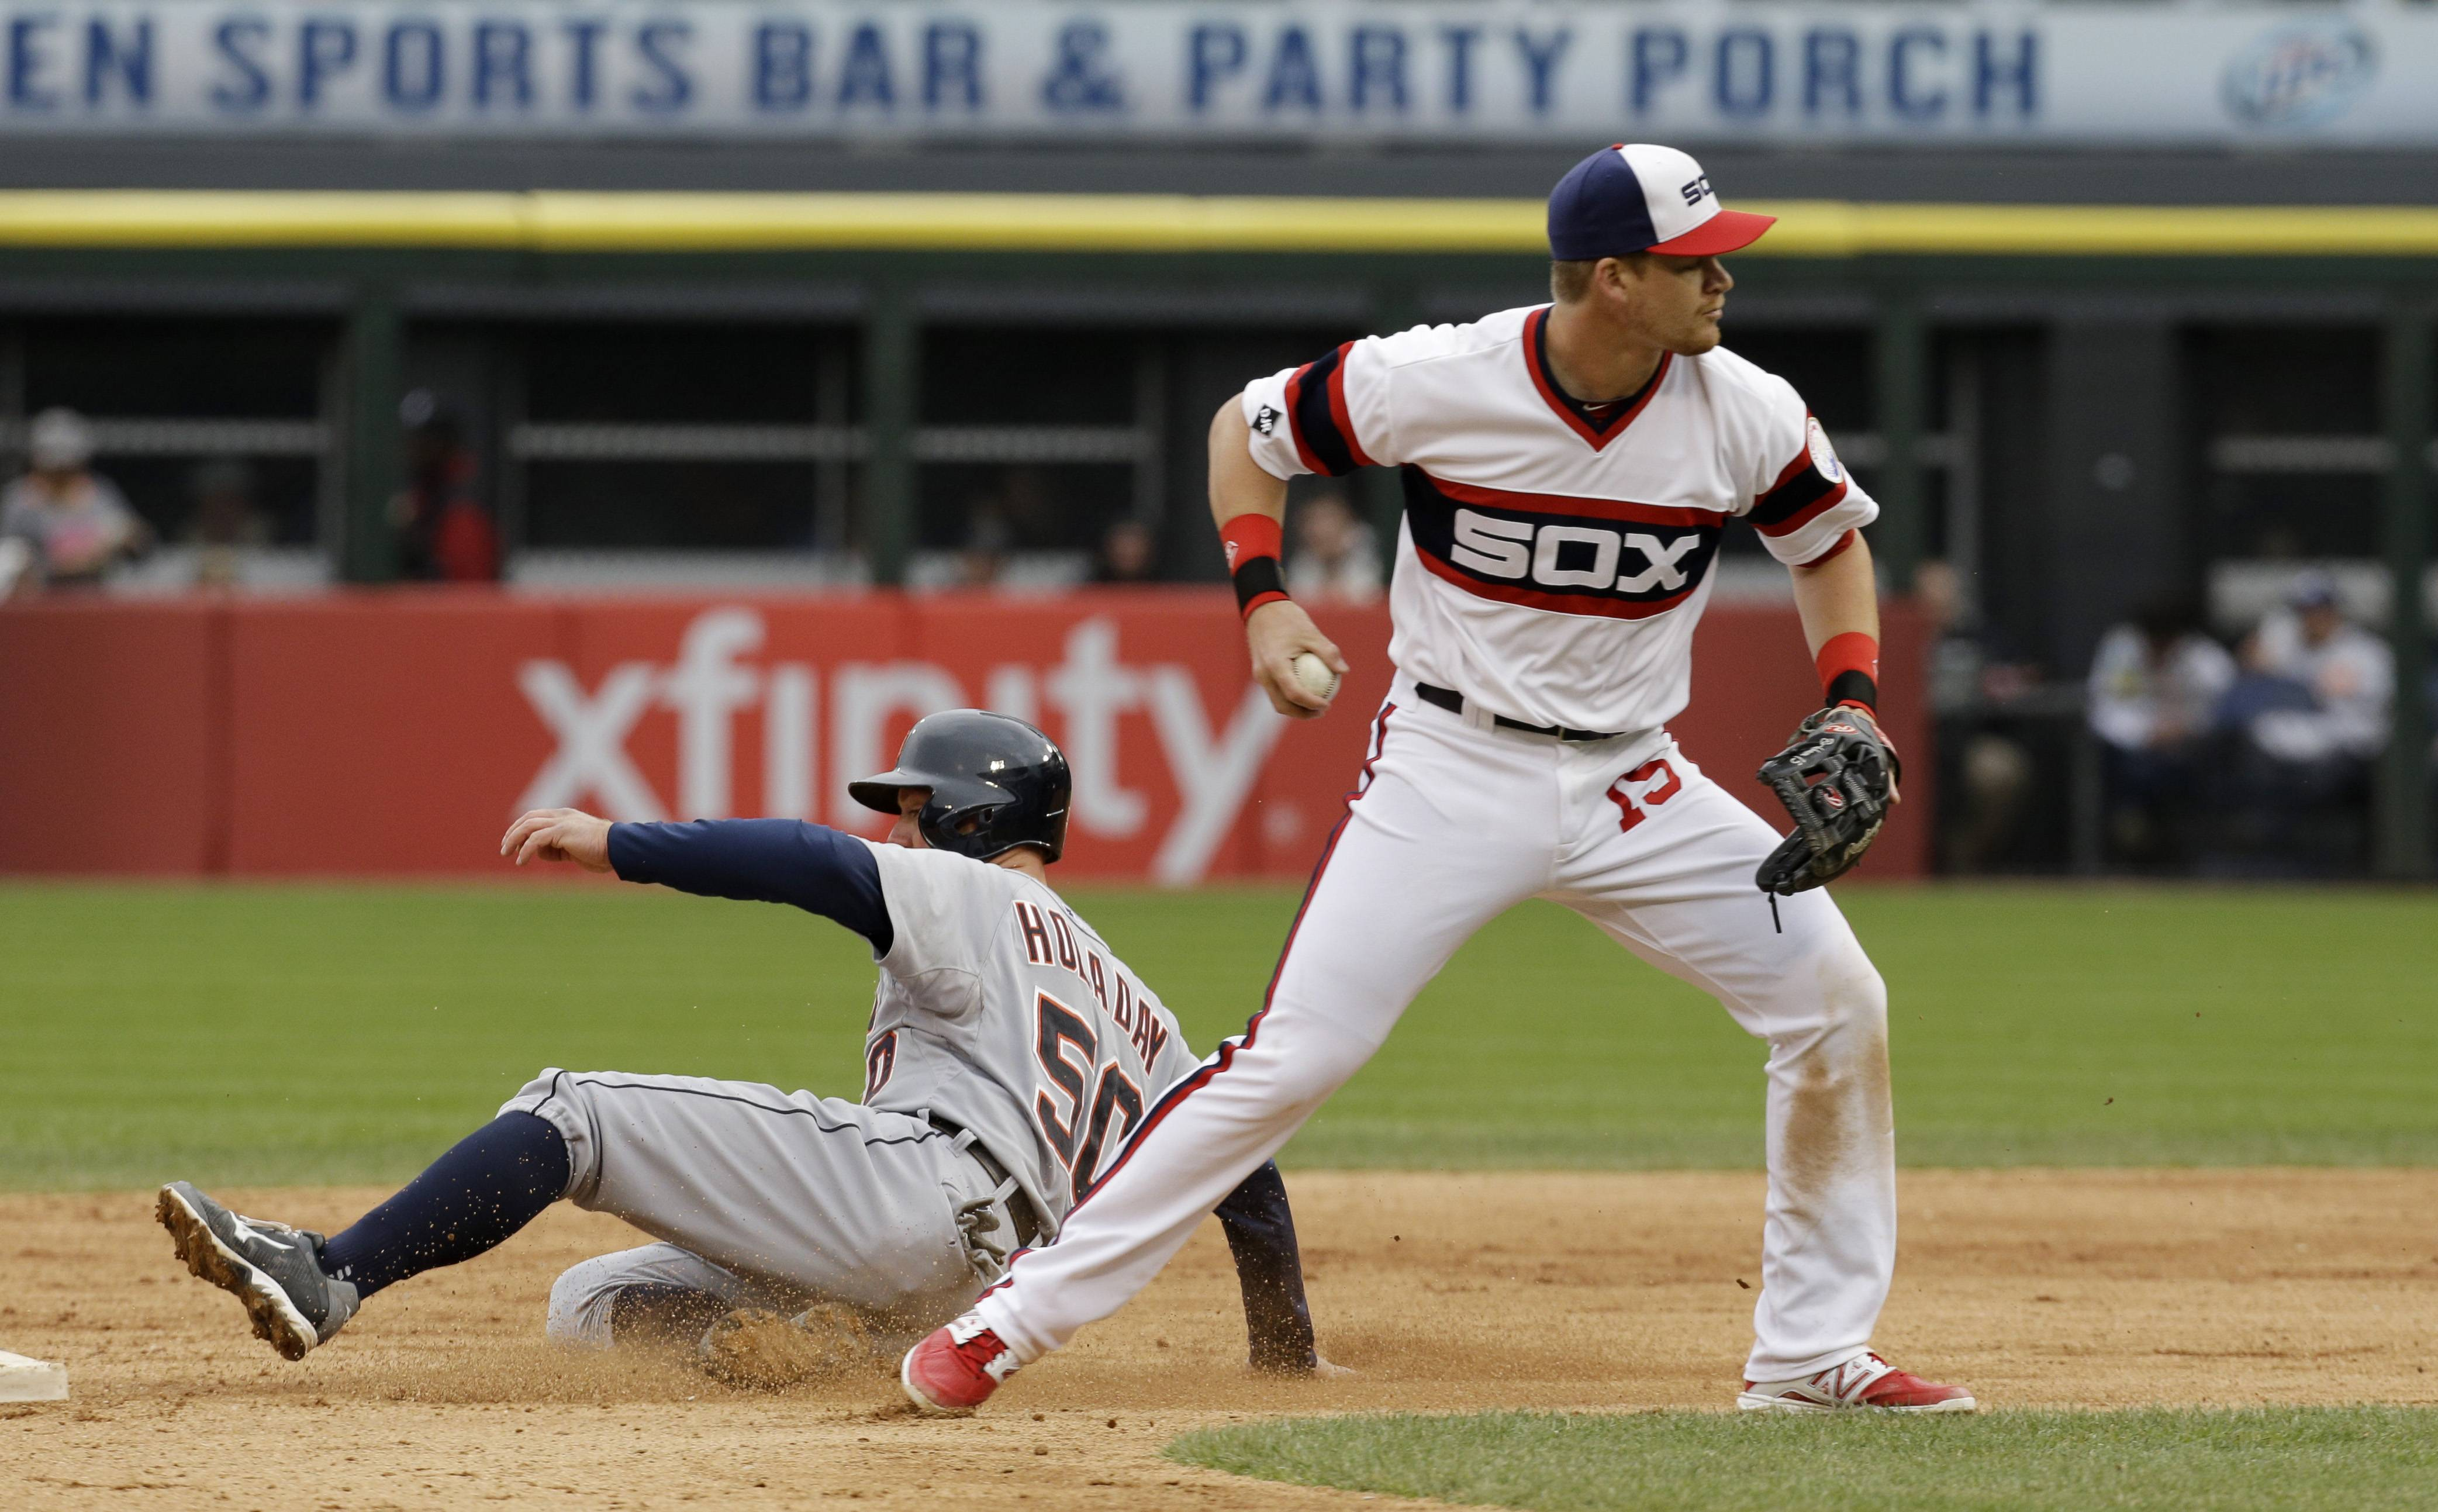 Detroit Tigers' Bryan Holaday, left, is safe at second base as Chicago White Sox second baseman Gordon Beckham looks to a throw during the ninth inning of a baseball game in Chicago on Wednesday, April 30, 2014. The Tigers won 5-1. (AP Photo/Nam Y. Huh)